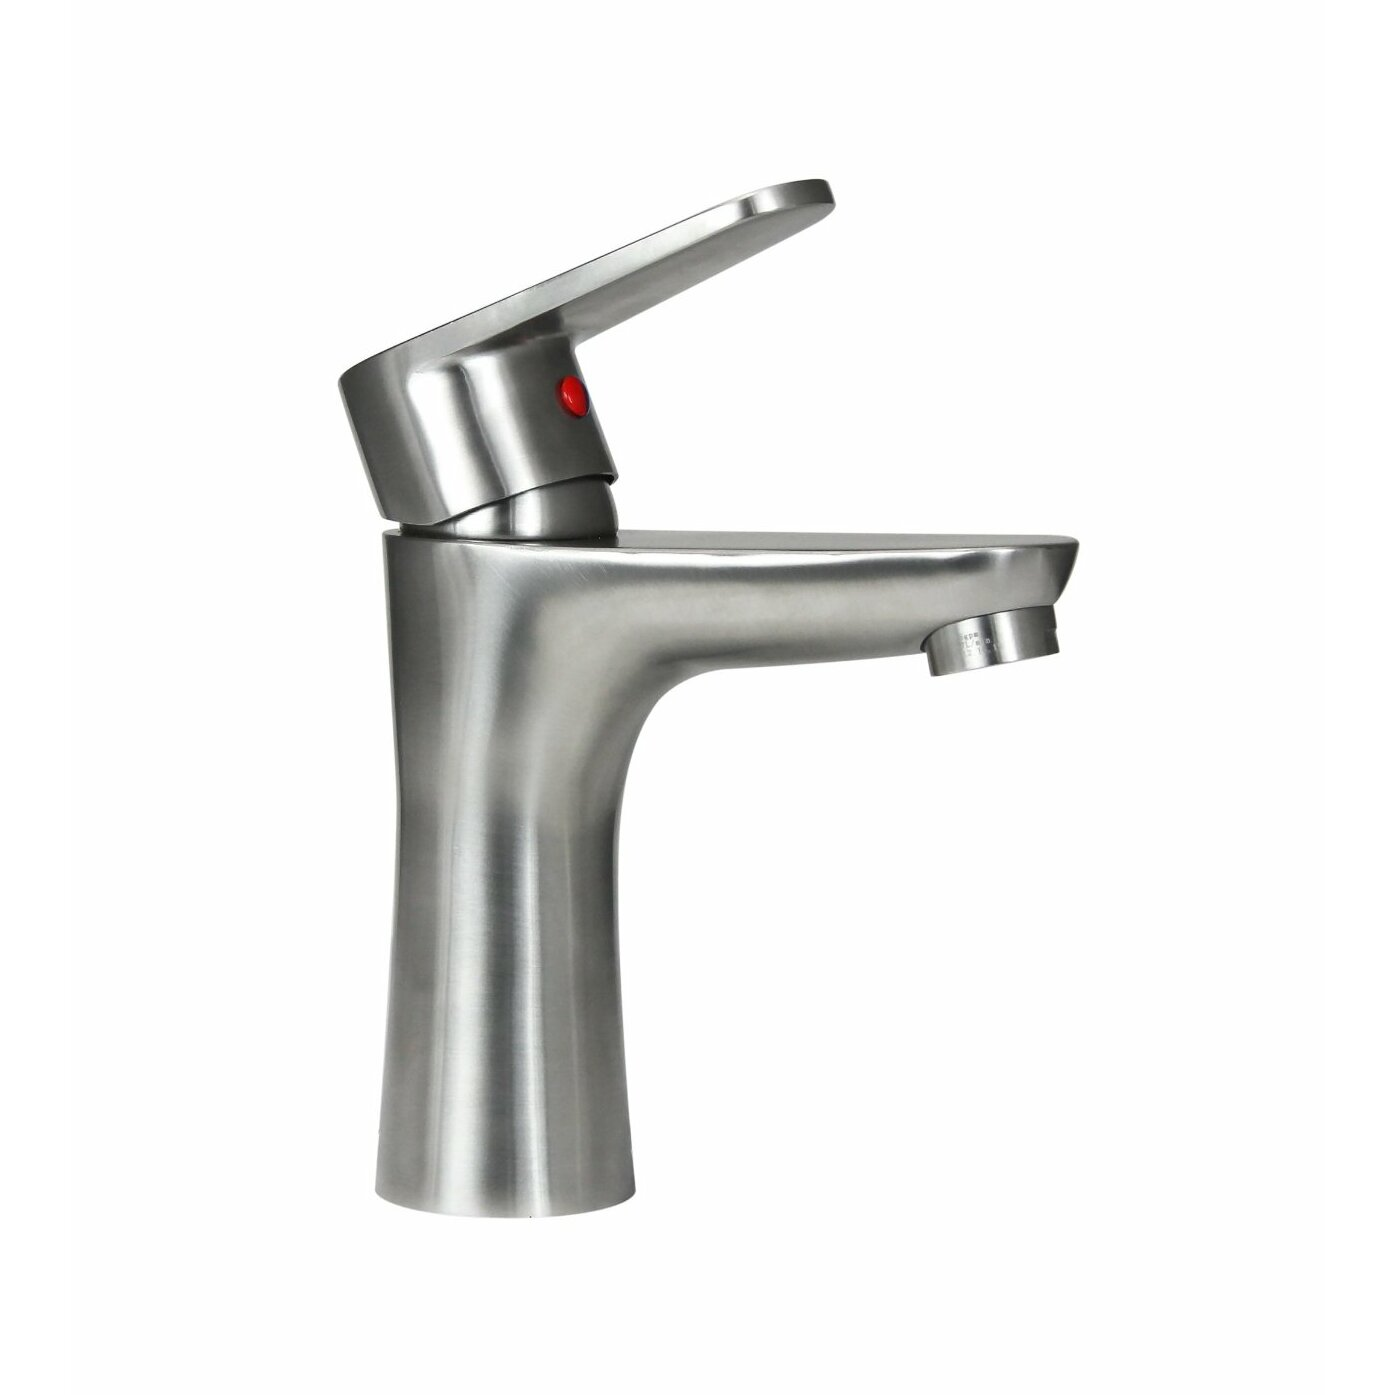 Unique Bathroom Faucet Reviews - Bathroom Interior Design